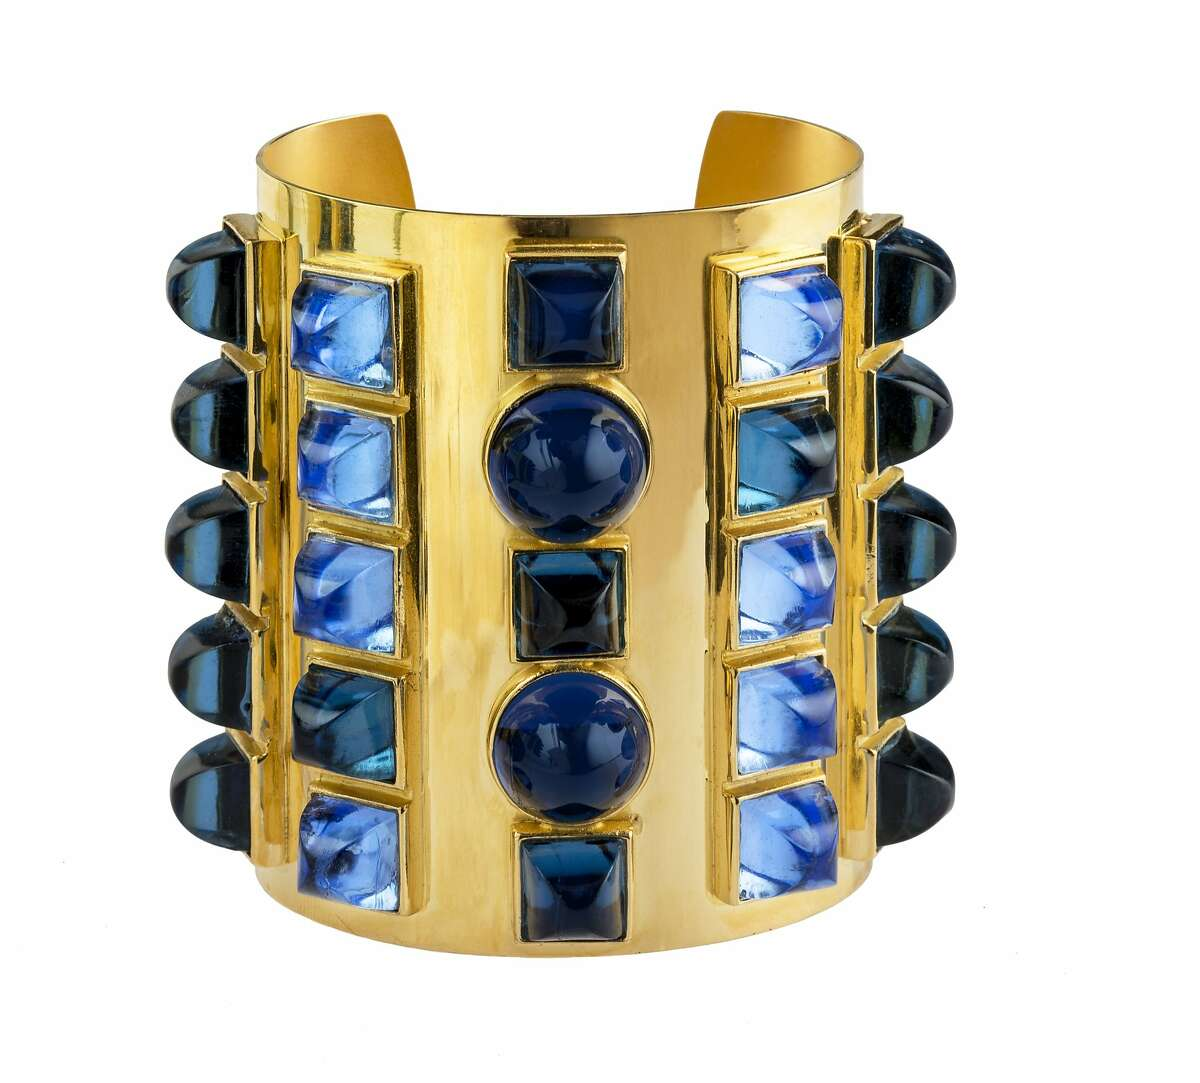 Mountain View jeweler Camille K has a new line called